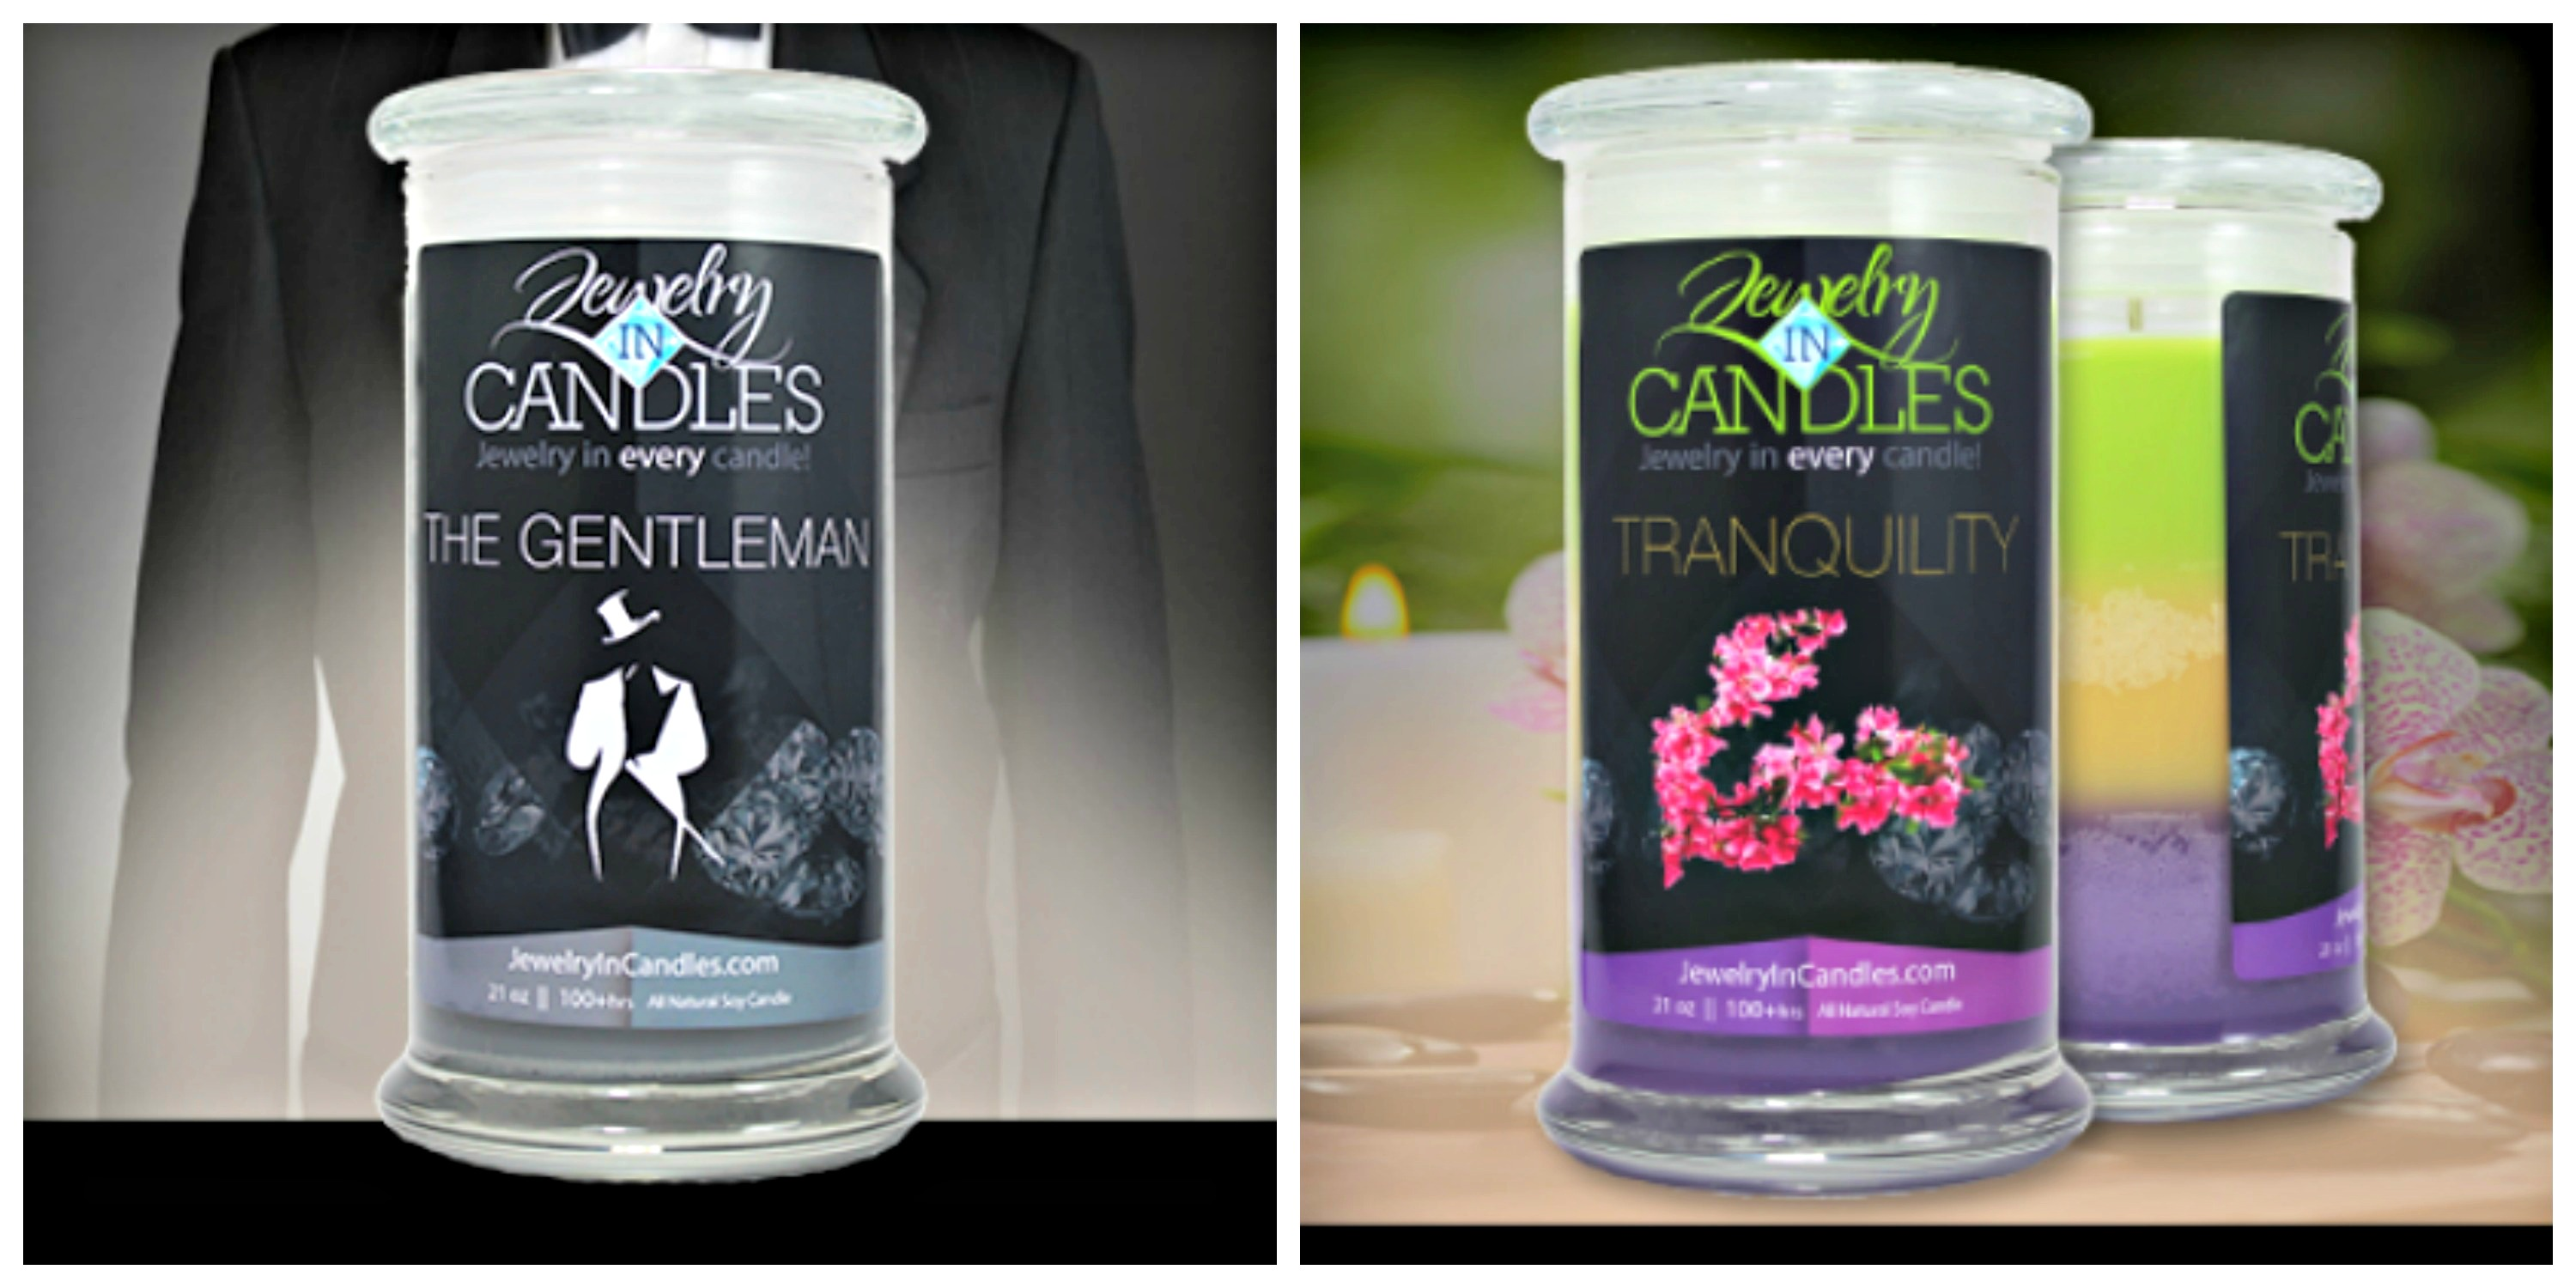 jewelry in candles new limited edition products the